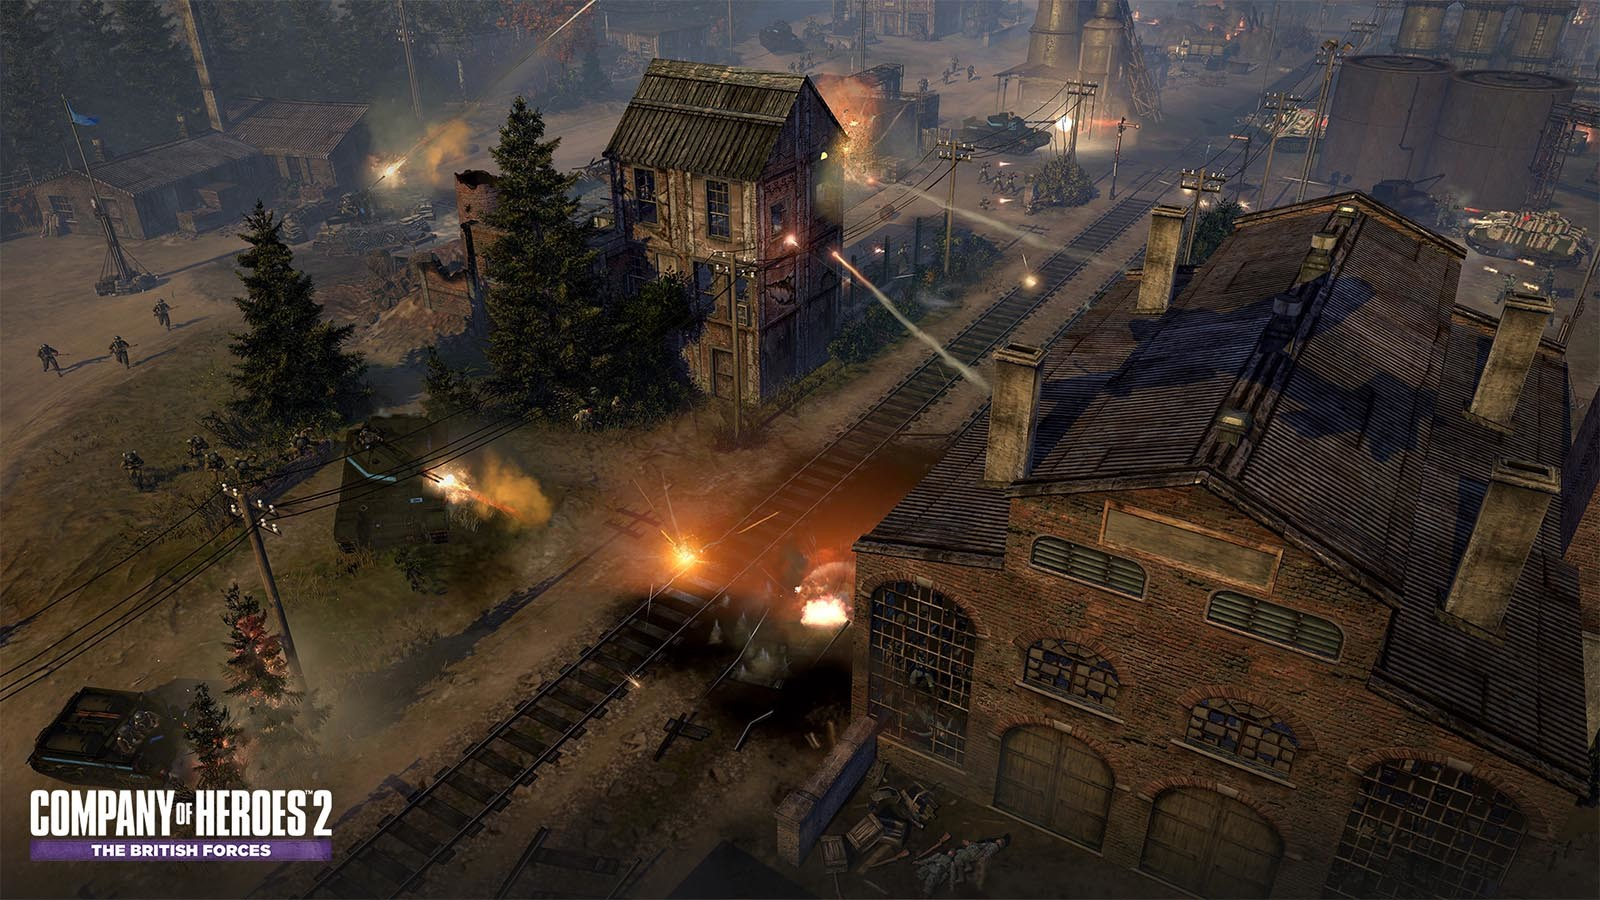 Company of heroes 2 save game fix not gambling